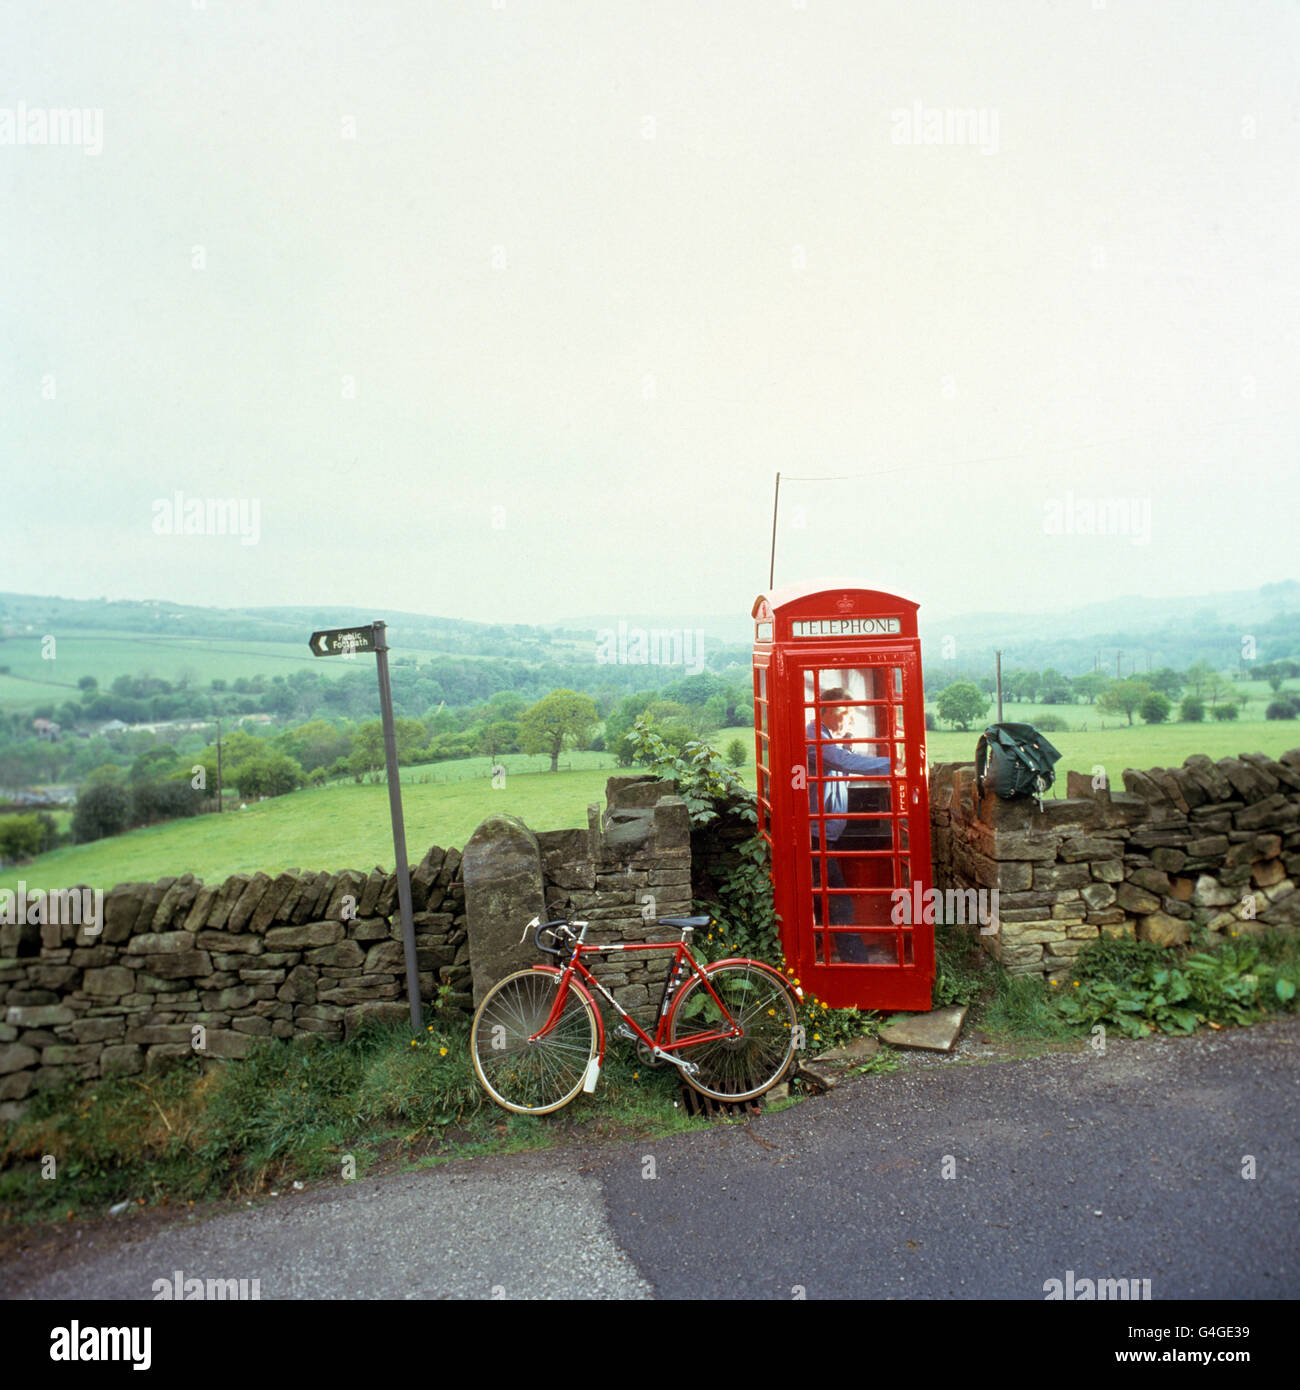 Customs & Traditions - Telephone Booth - Stock Image